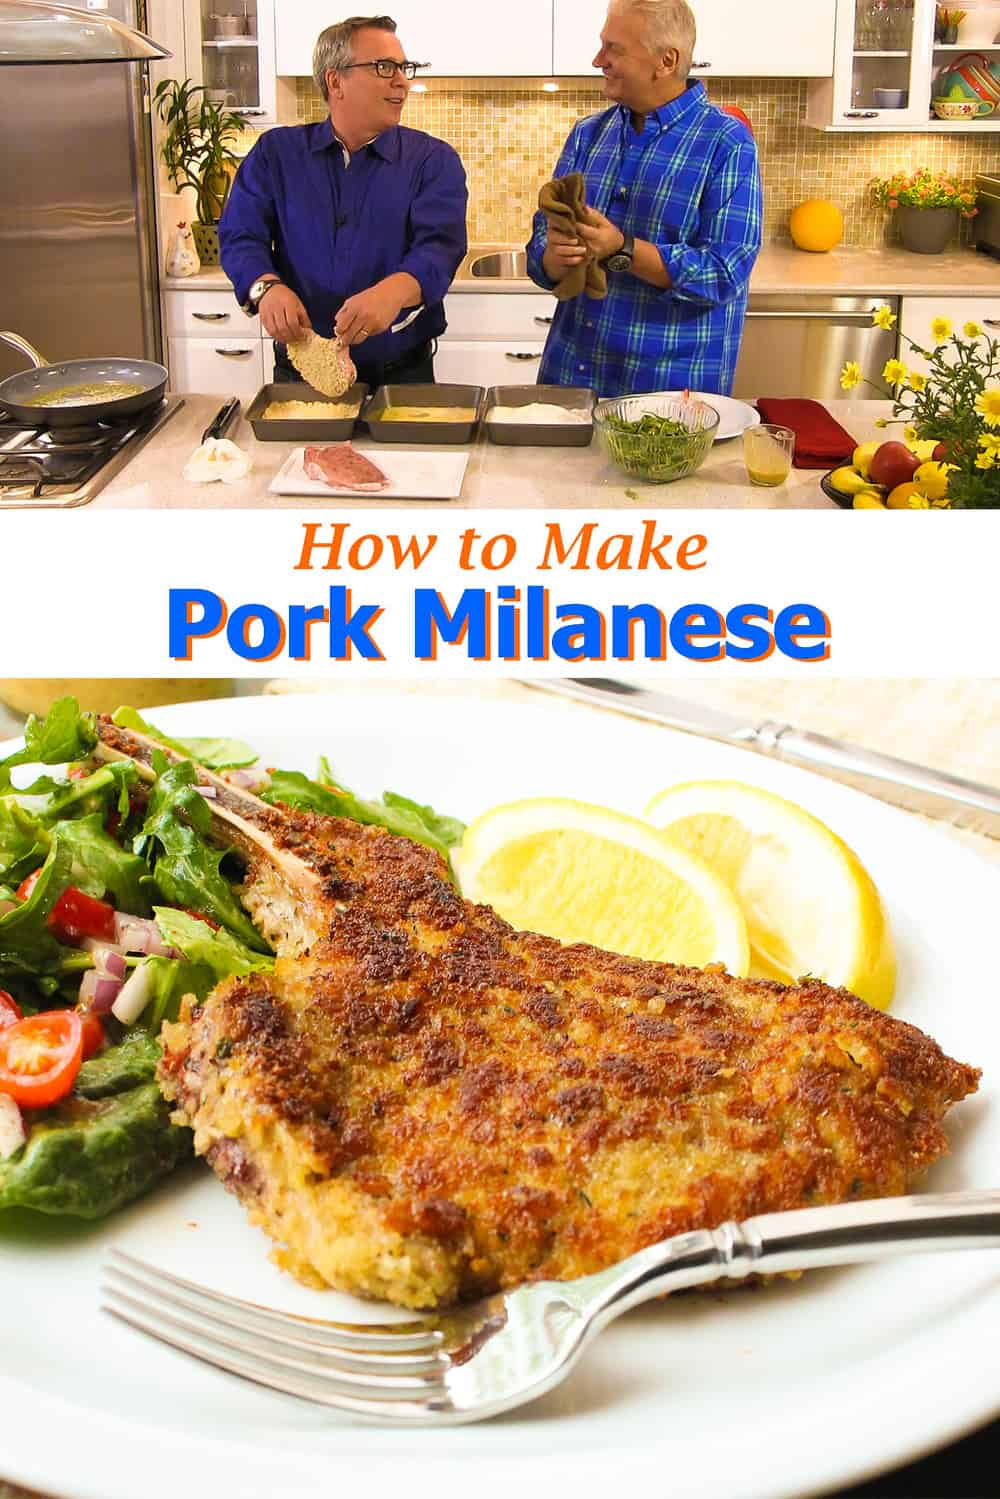 How to Make Pork Milanese